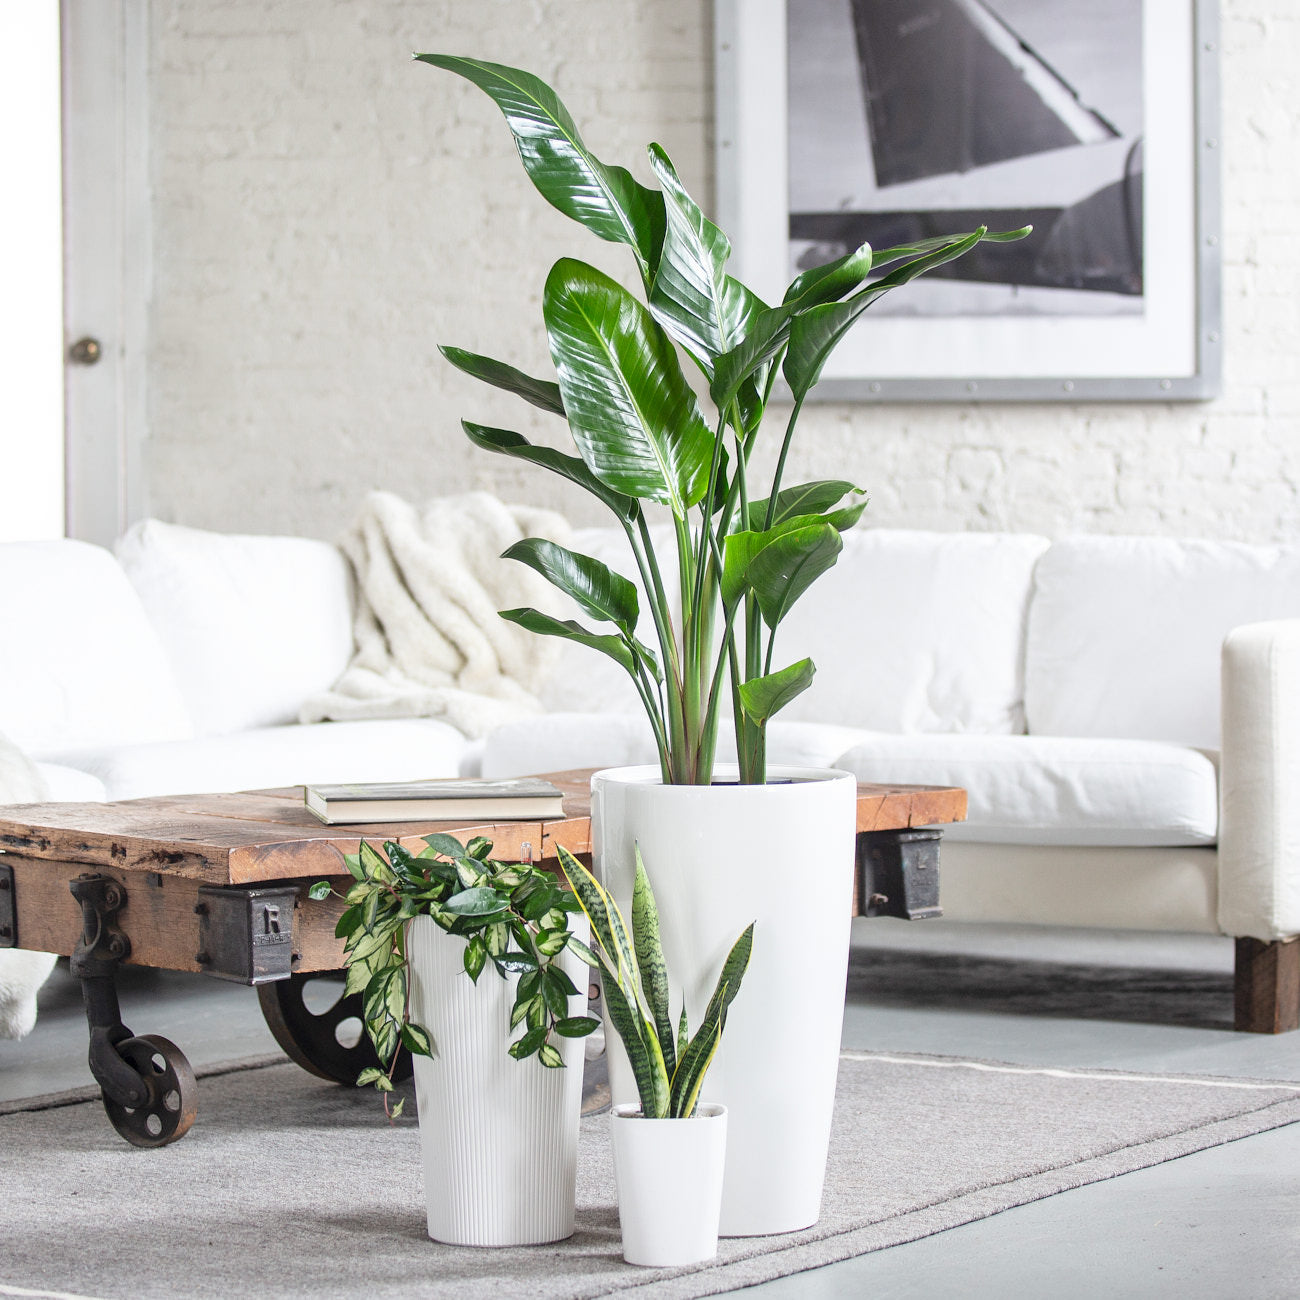 Plant Delivery NYC - My City Plants - Online Plant Shop